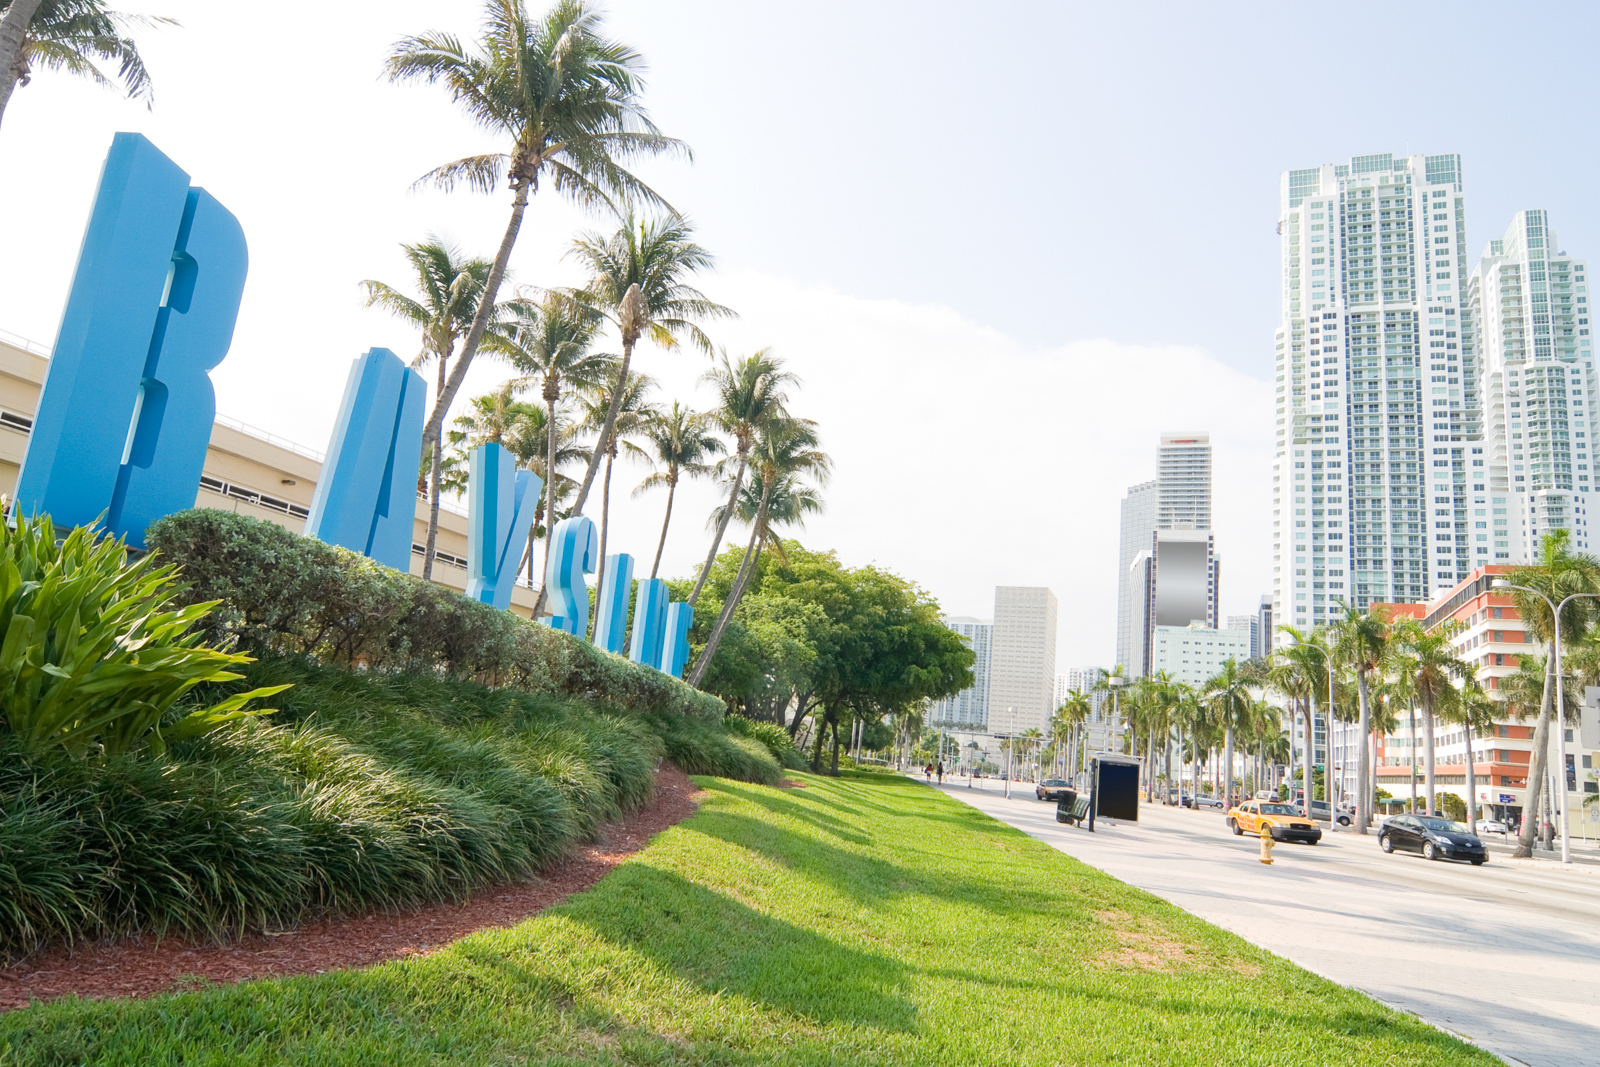 Biscayne Blvd in Miami, Florida in early morning light. Your guide for all the top Miami attractions and best things to do in Miami. There are Plenty of tourist attractions in Miami Florida. This Guide presented by Flying and Travel.